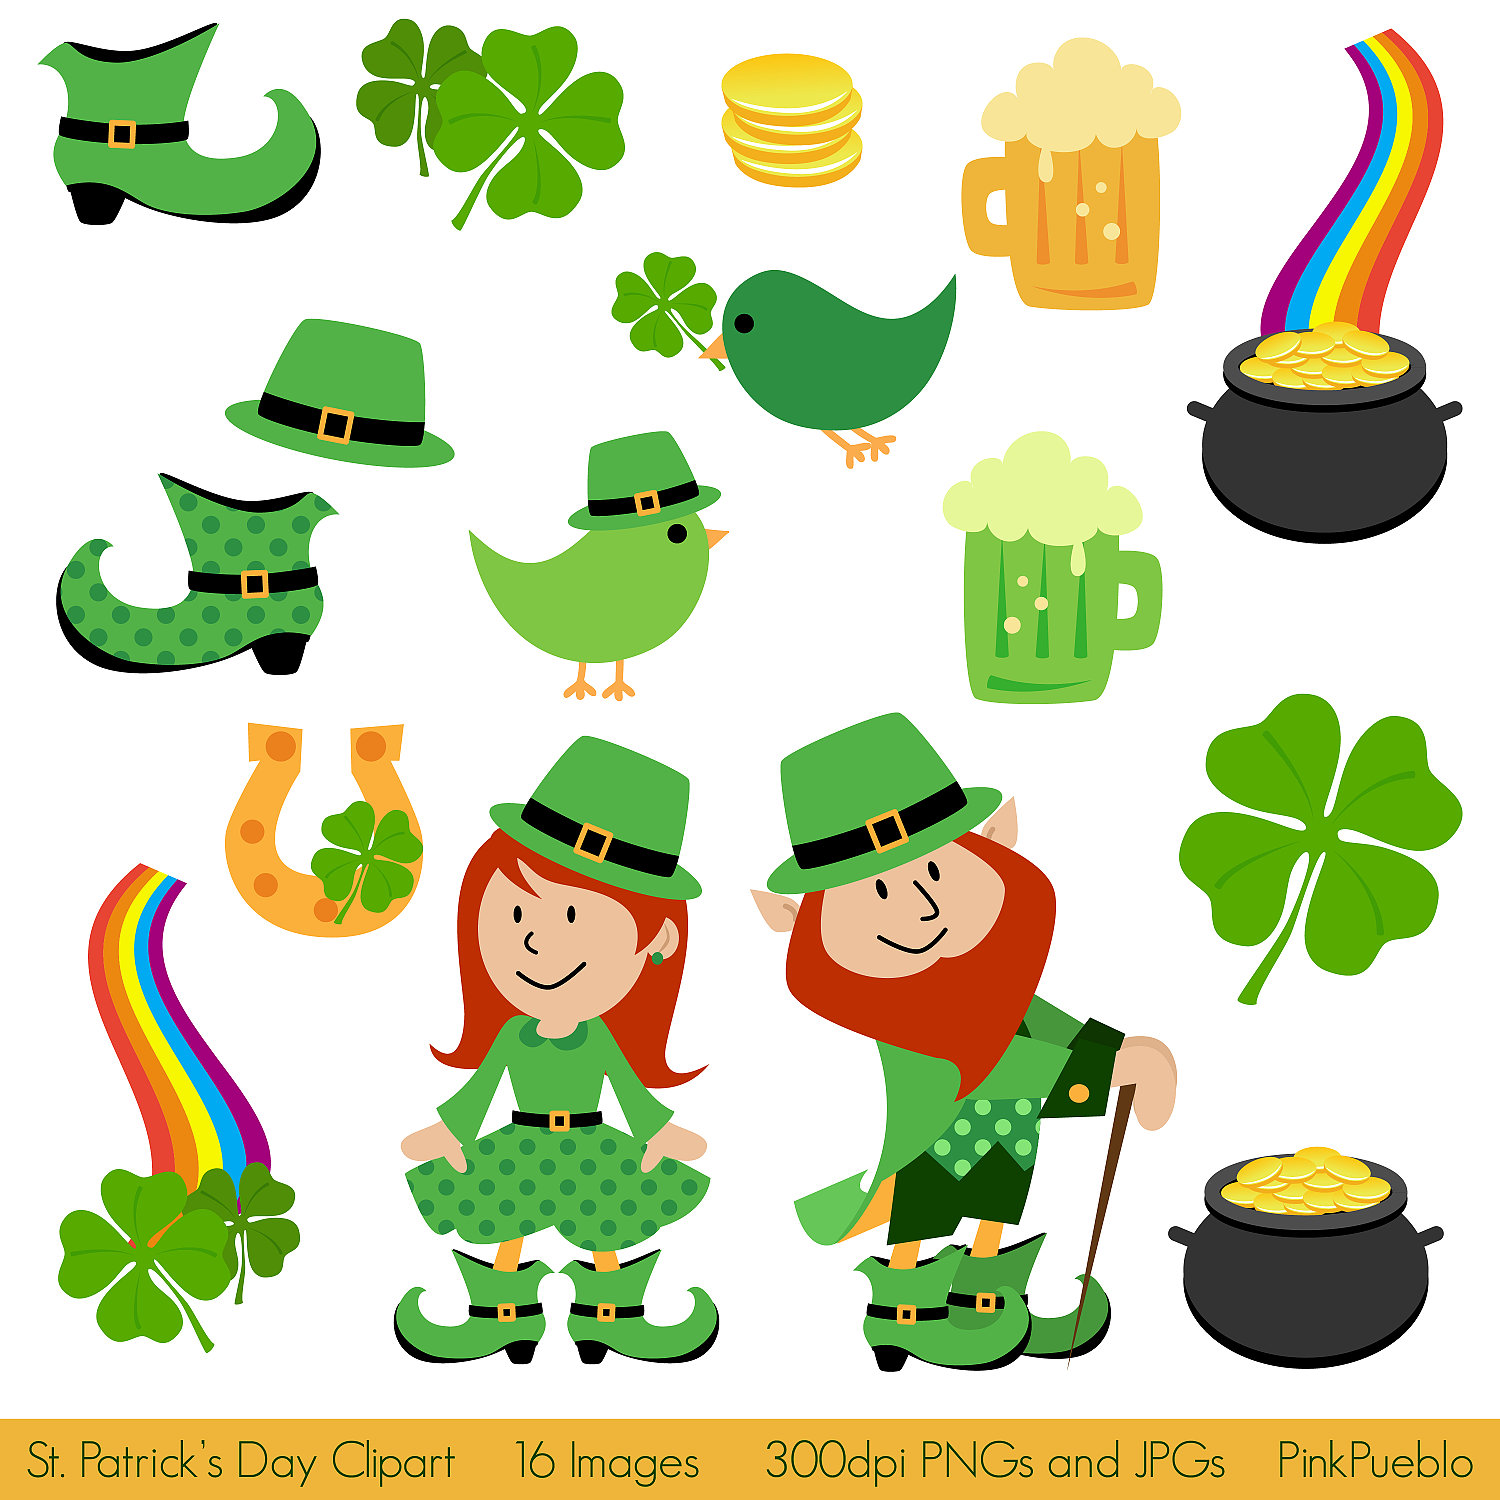 St. Patrick's Day clipart #4, Download drawings